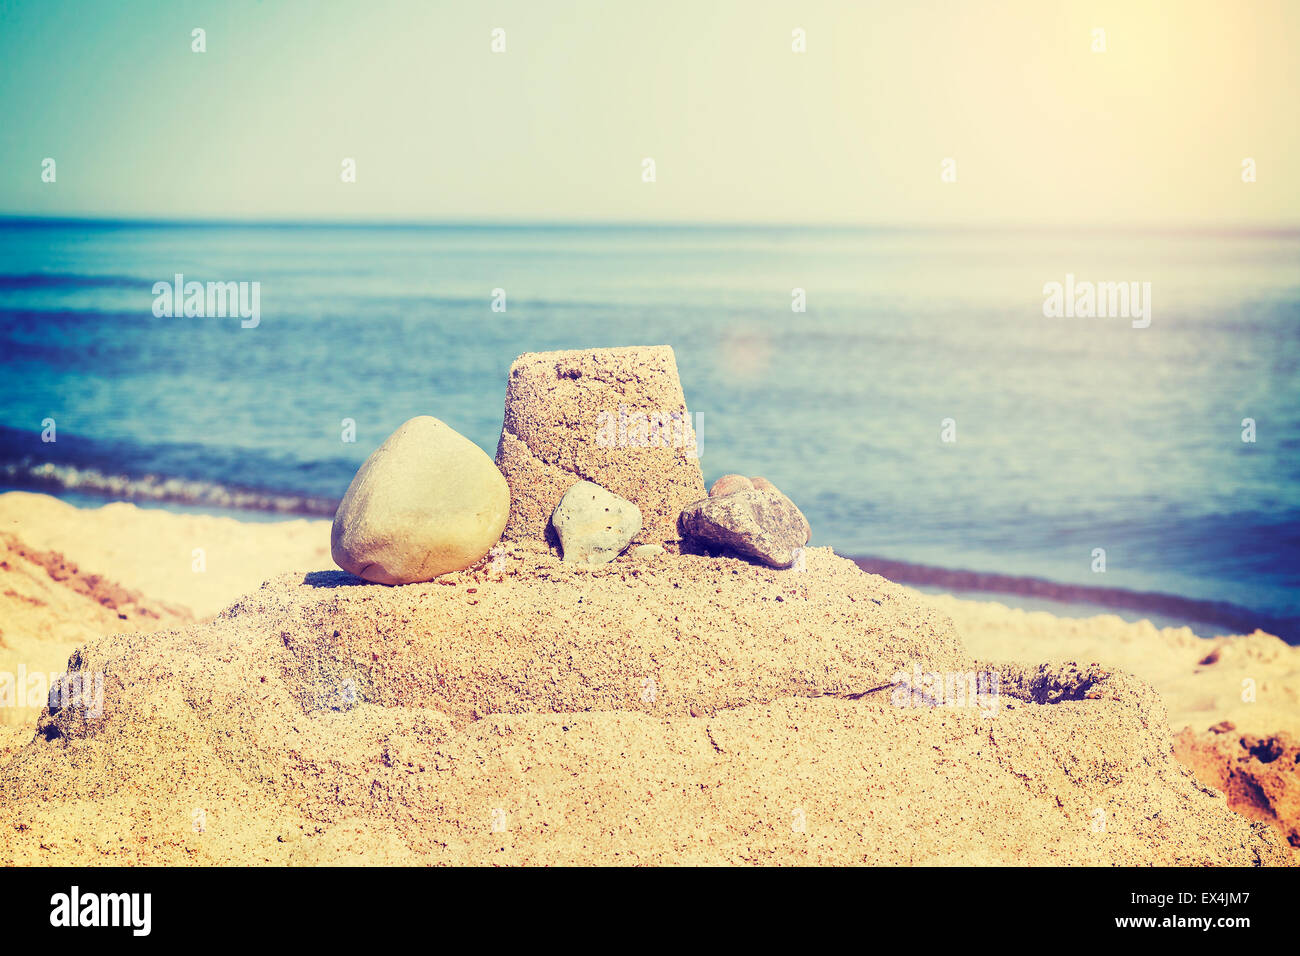 Vintage retro toned simple sandcastle on a beach, summer holidays concept. - Stock Image